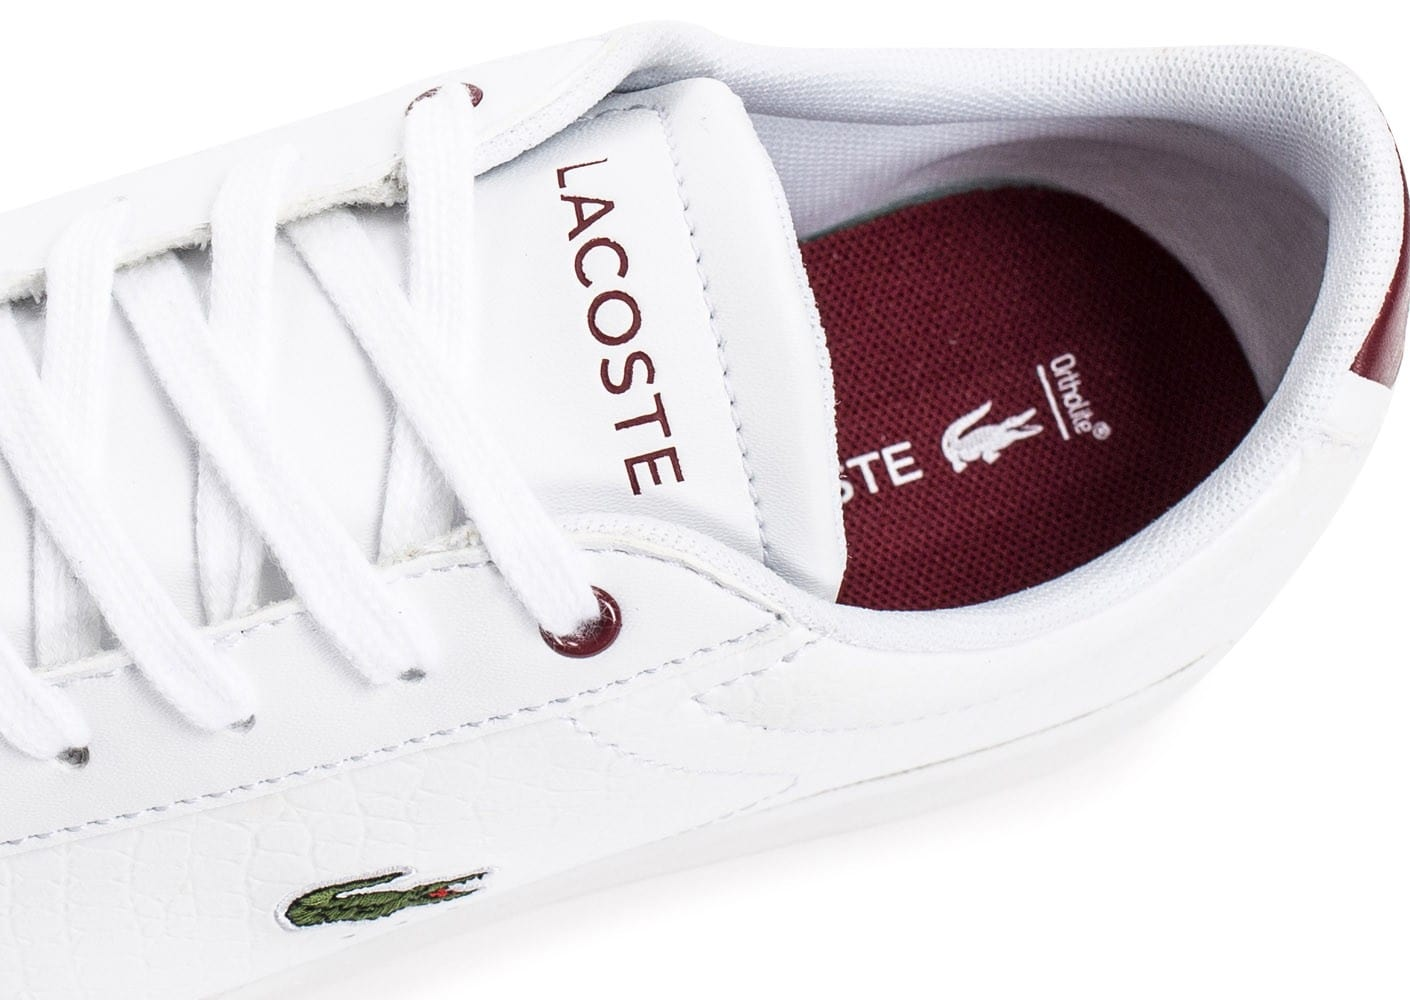 ec71223ad4 Lacoste Carnaby EVO Croc blanche et rouge - Chaussures Baskets femme ...